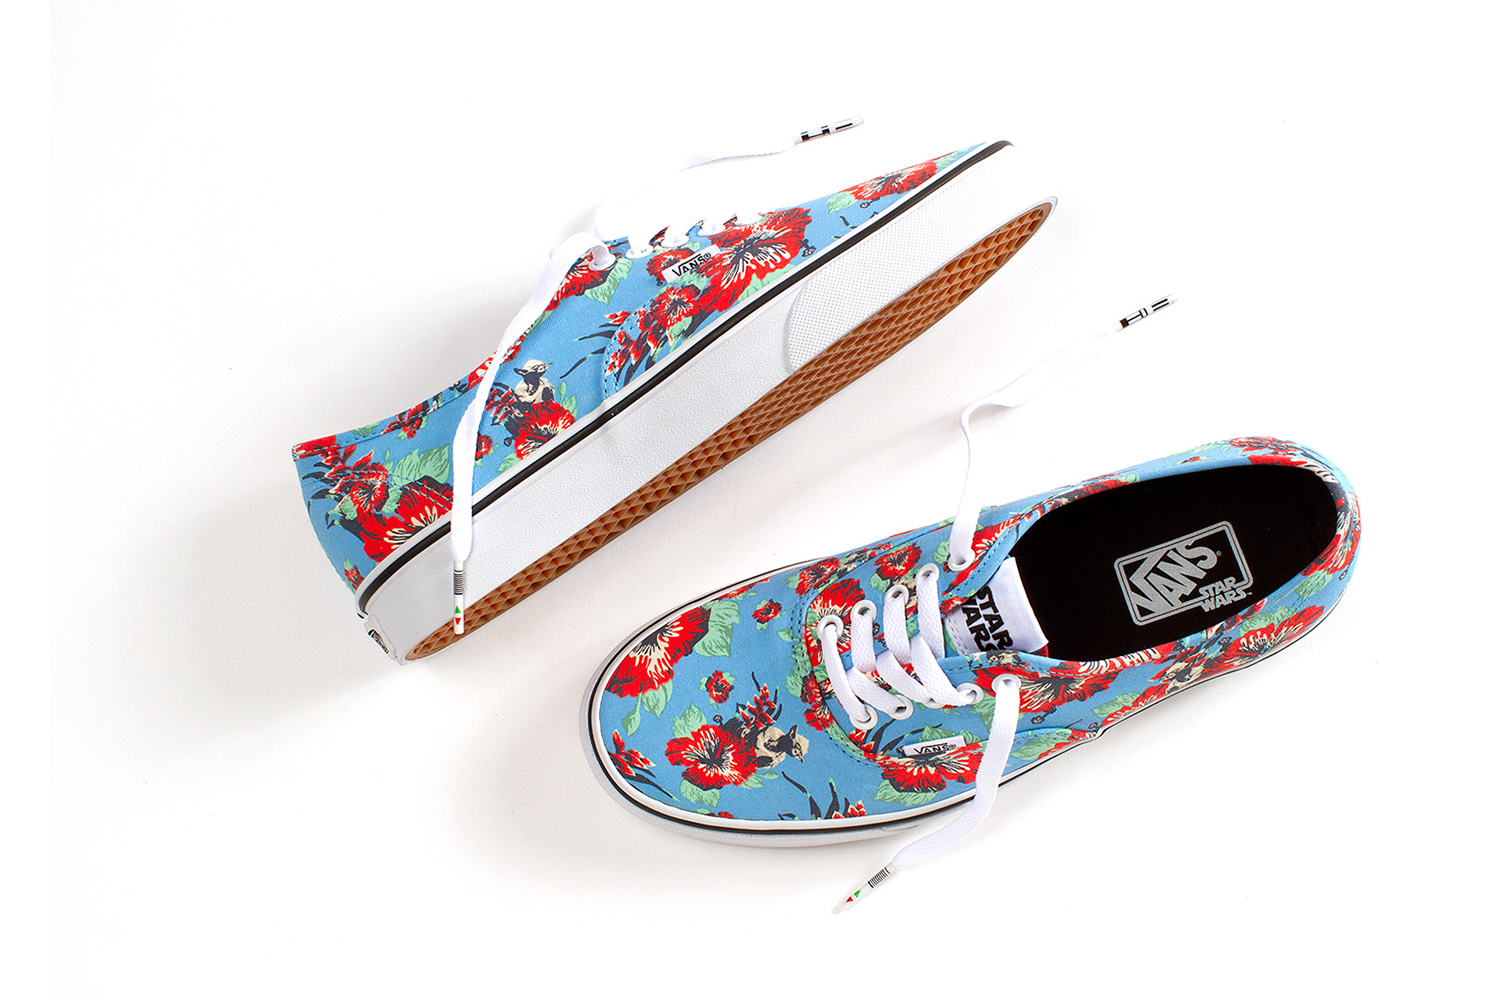 Vans Femme Nouvelle Collection